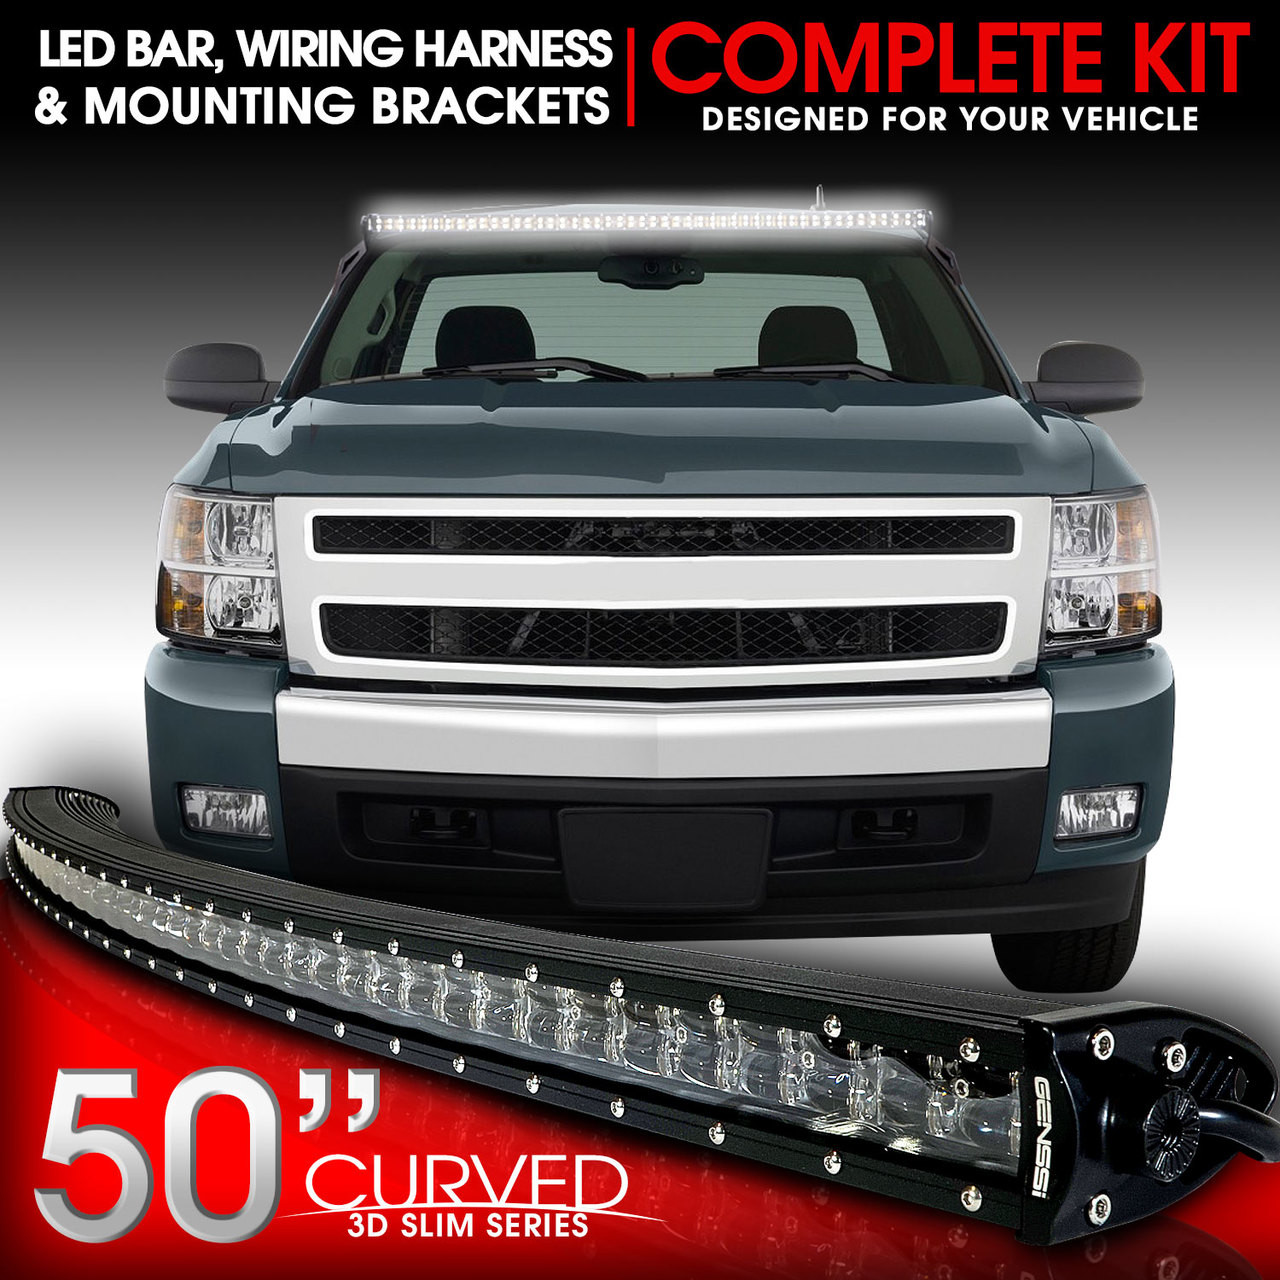 led light bar curved 288w 50 inches bracket wiring harness kit for gmc  sierra chevy silverado